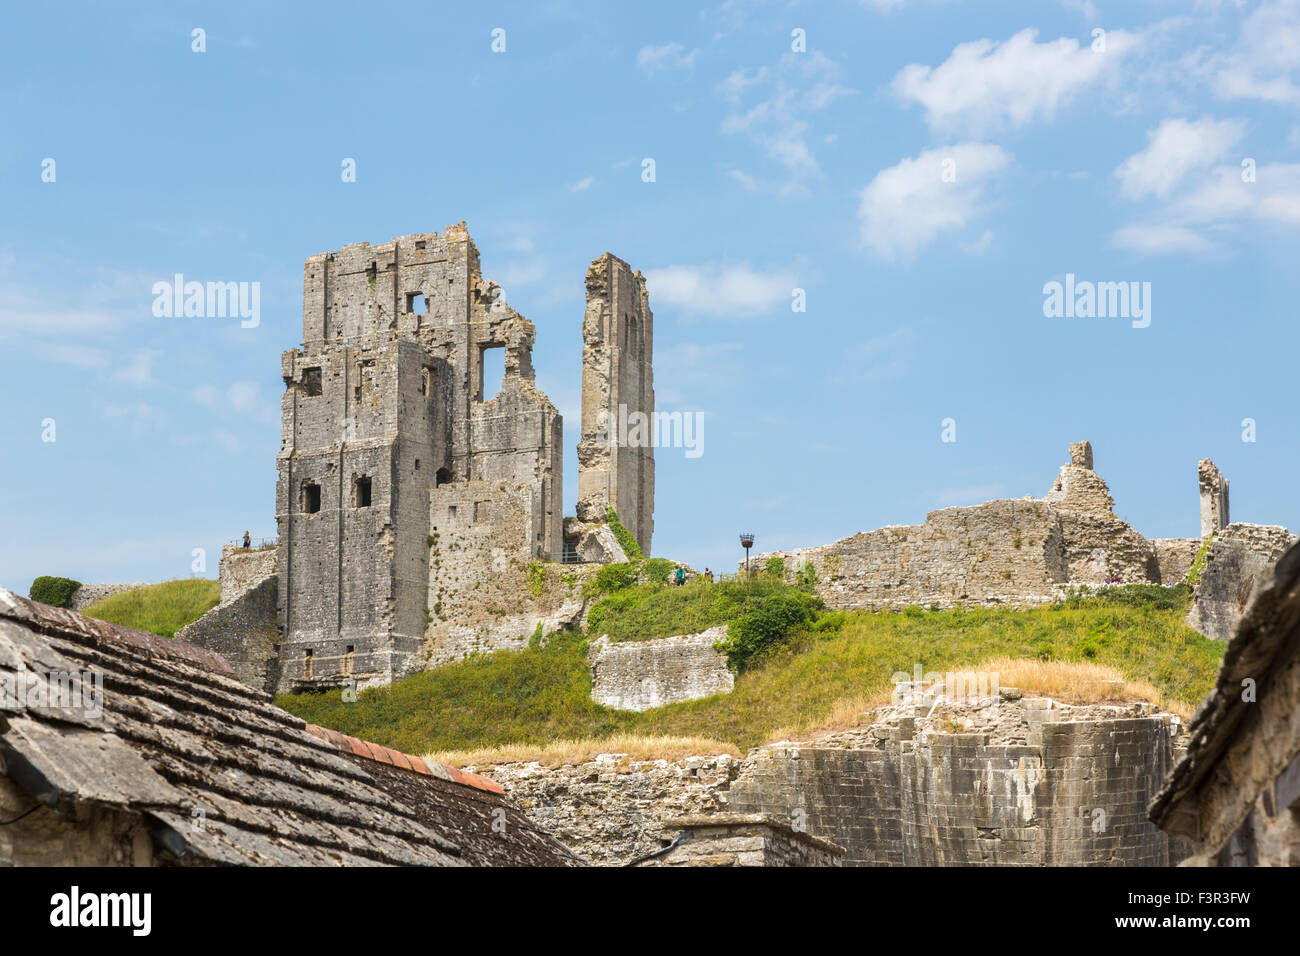 Iconic ruins of hilltop medieval Corfe Castle, a popular leading sightseeing landmark in Wessex, Dorset, southwest - Stock Image